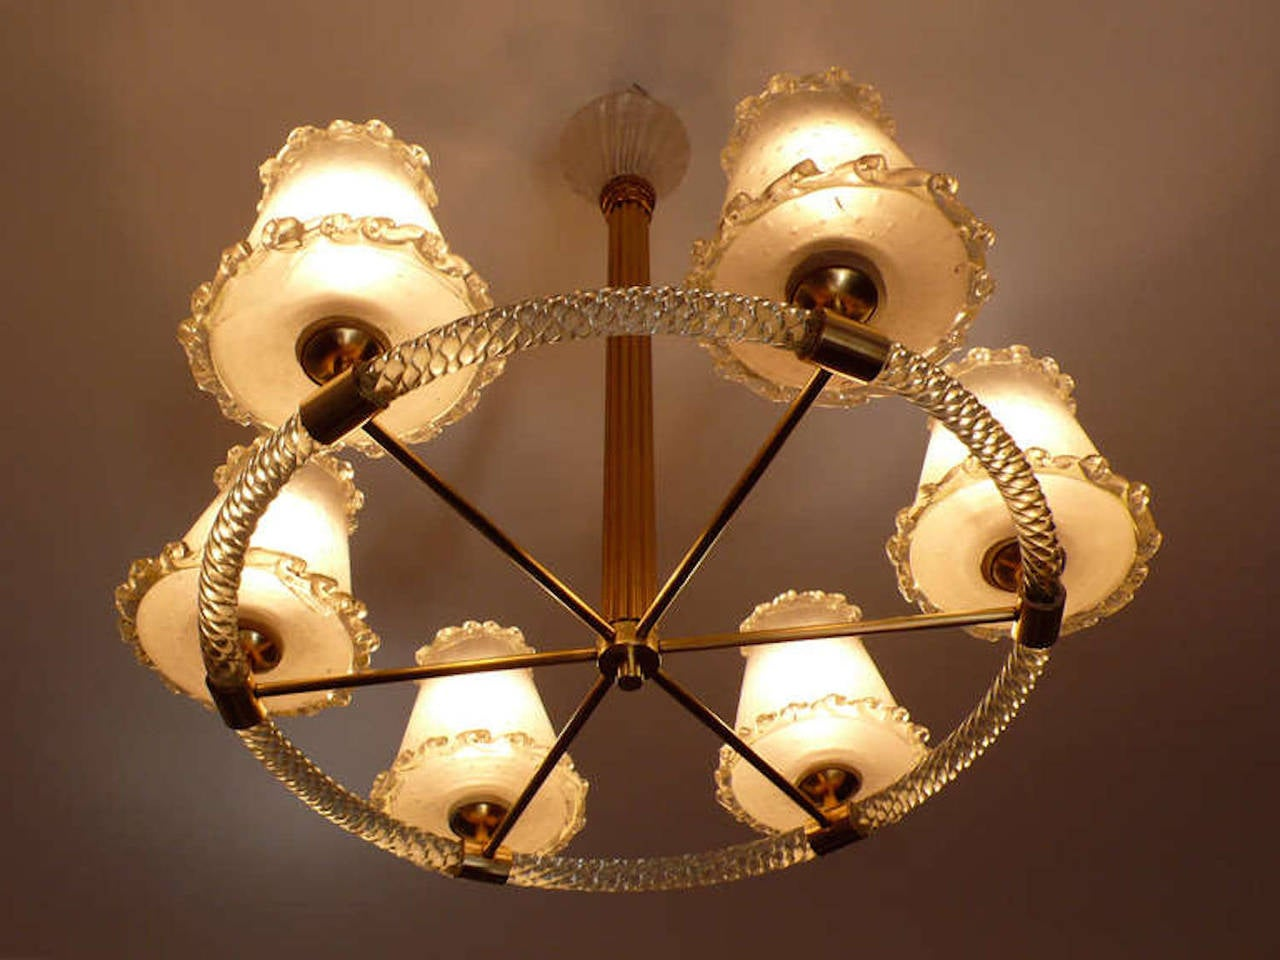 Murano chandelier by barovier e toso 1940 at 1stdibs for Barovier e toso